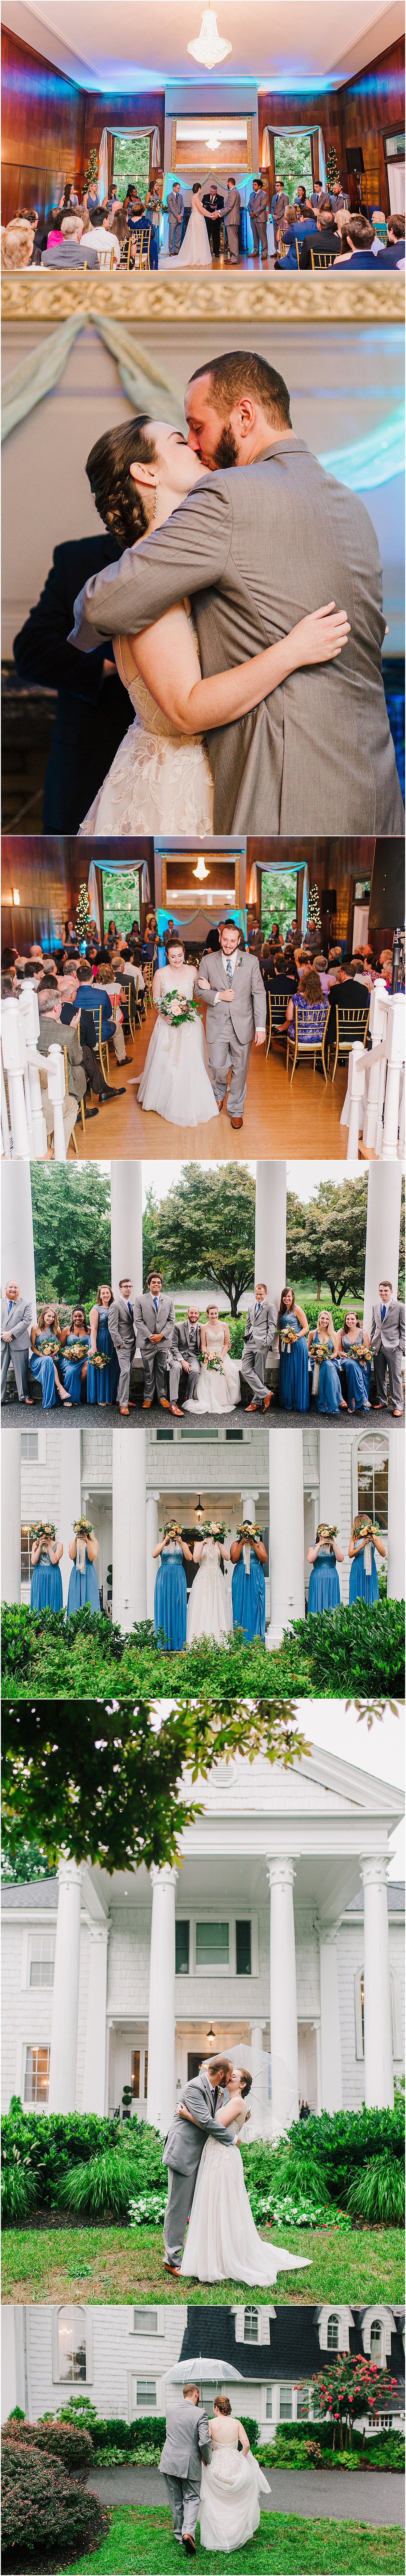 Rainy Day Wedding at Overhills Mansion. Baltimore Wedding Photographer